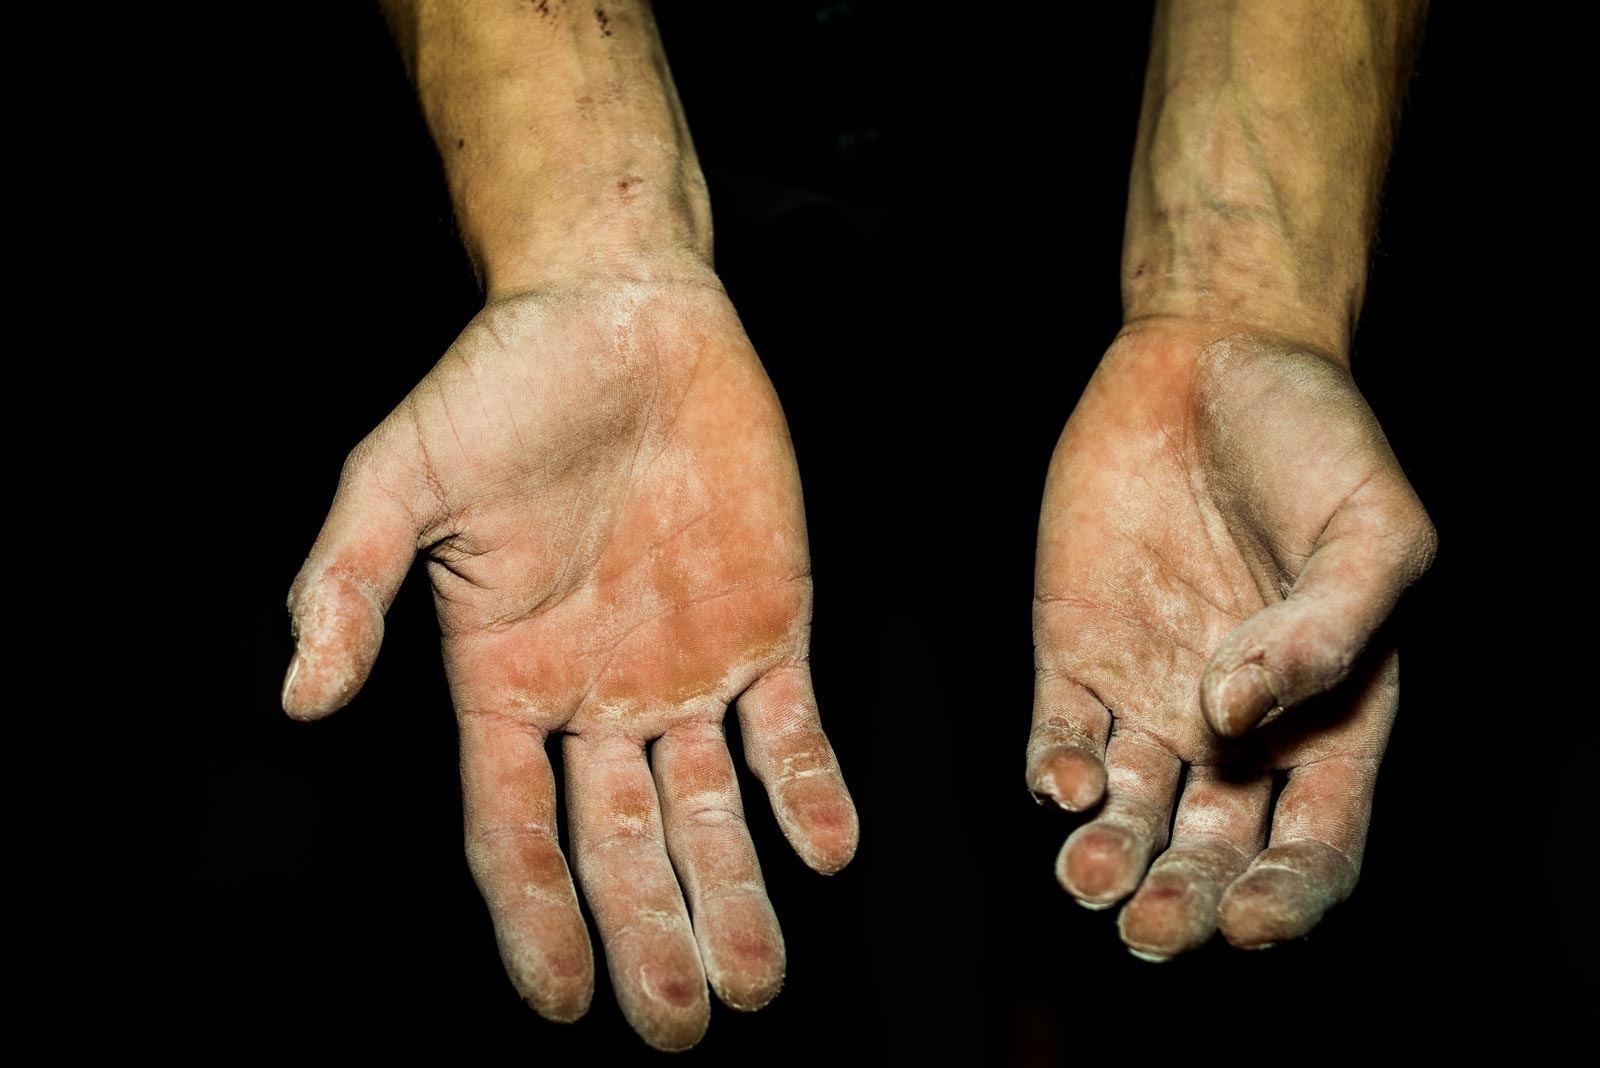 Hands of Janja Garnbret from Slovenia